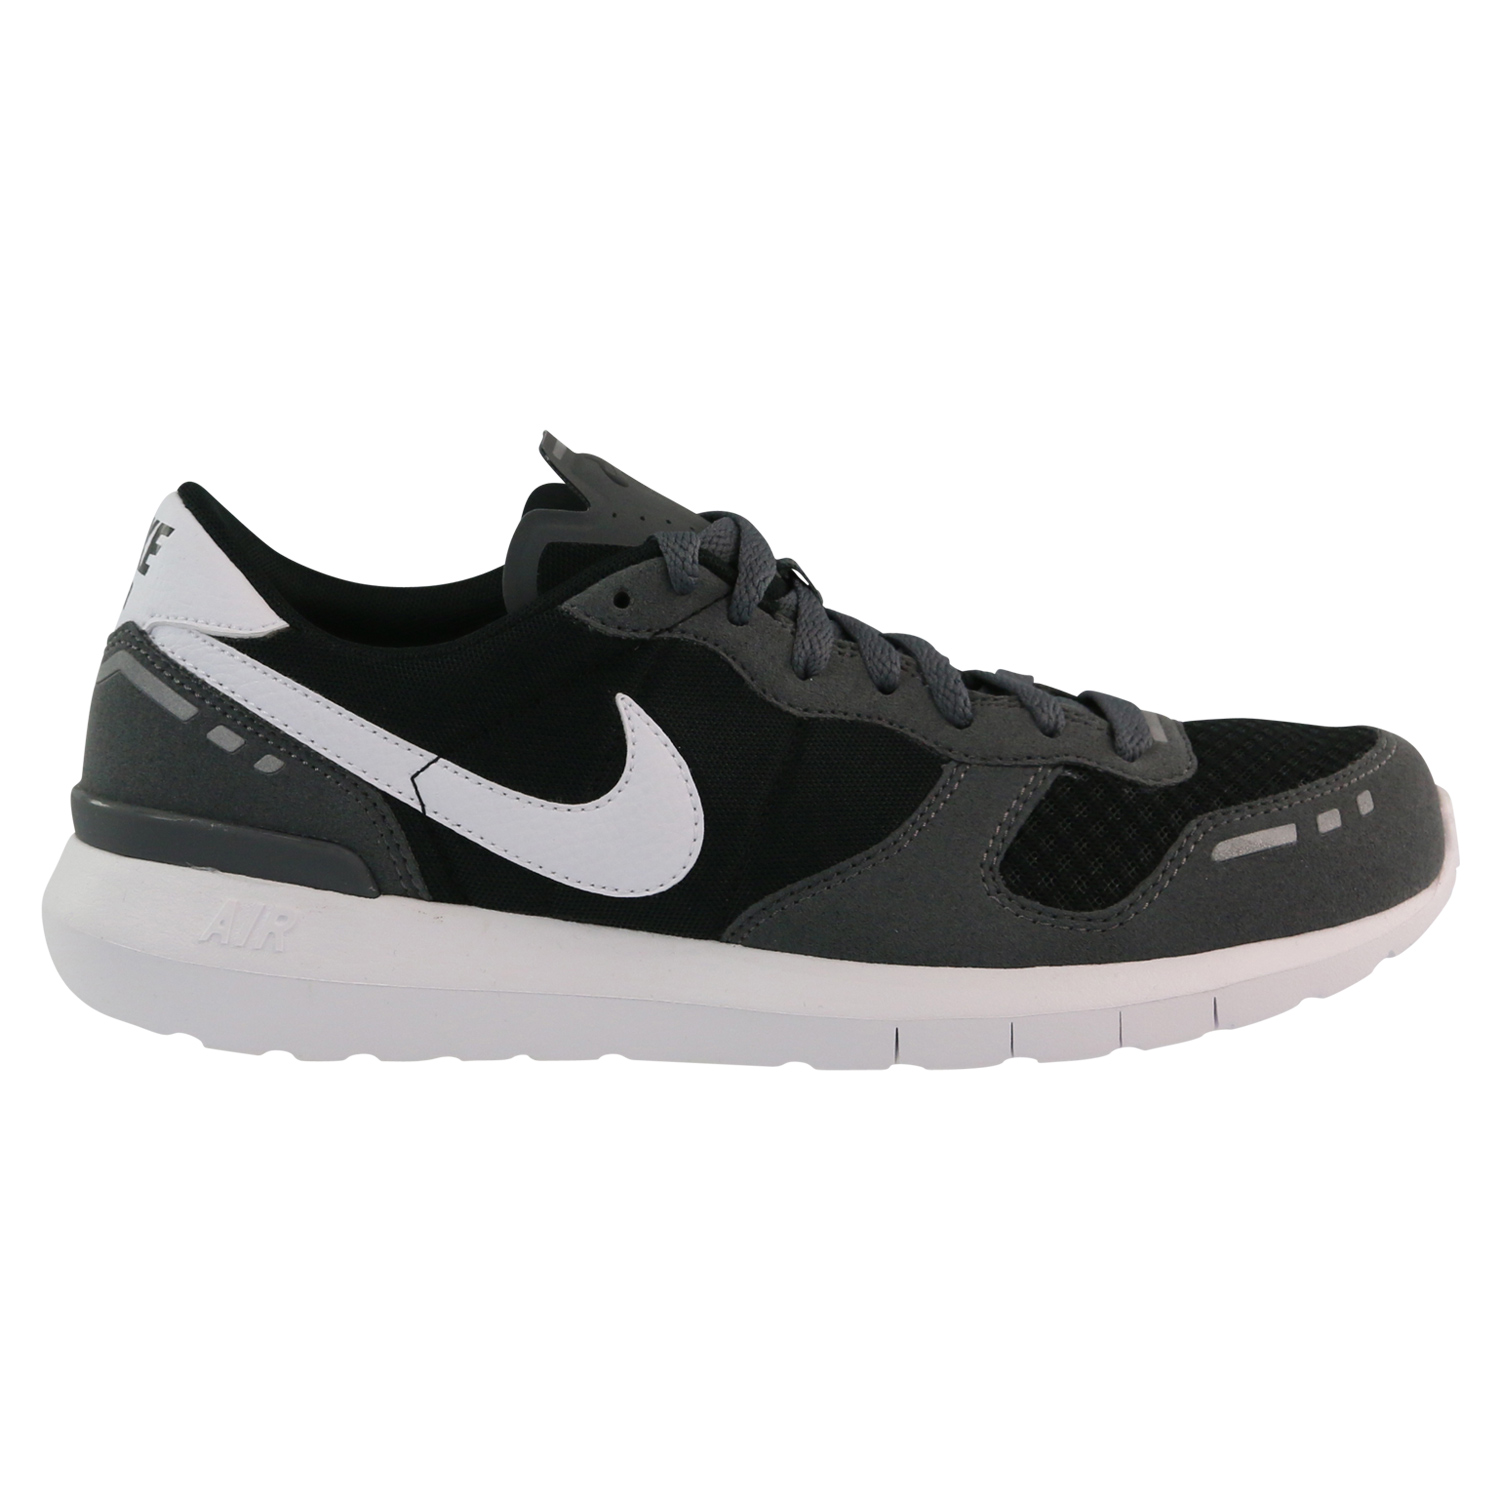 nike air vortex 2017 schuhe turnschuhe sneaker herren ebay. Black Bedroom Furniture Sets. Home Design Ideas